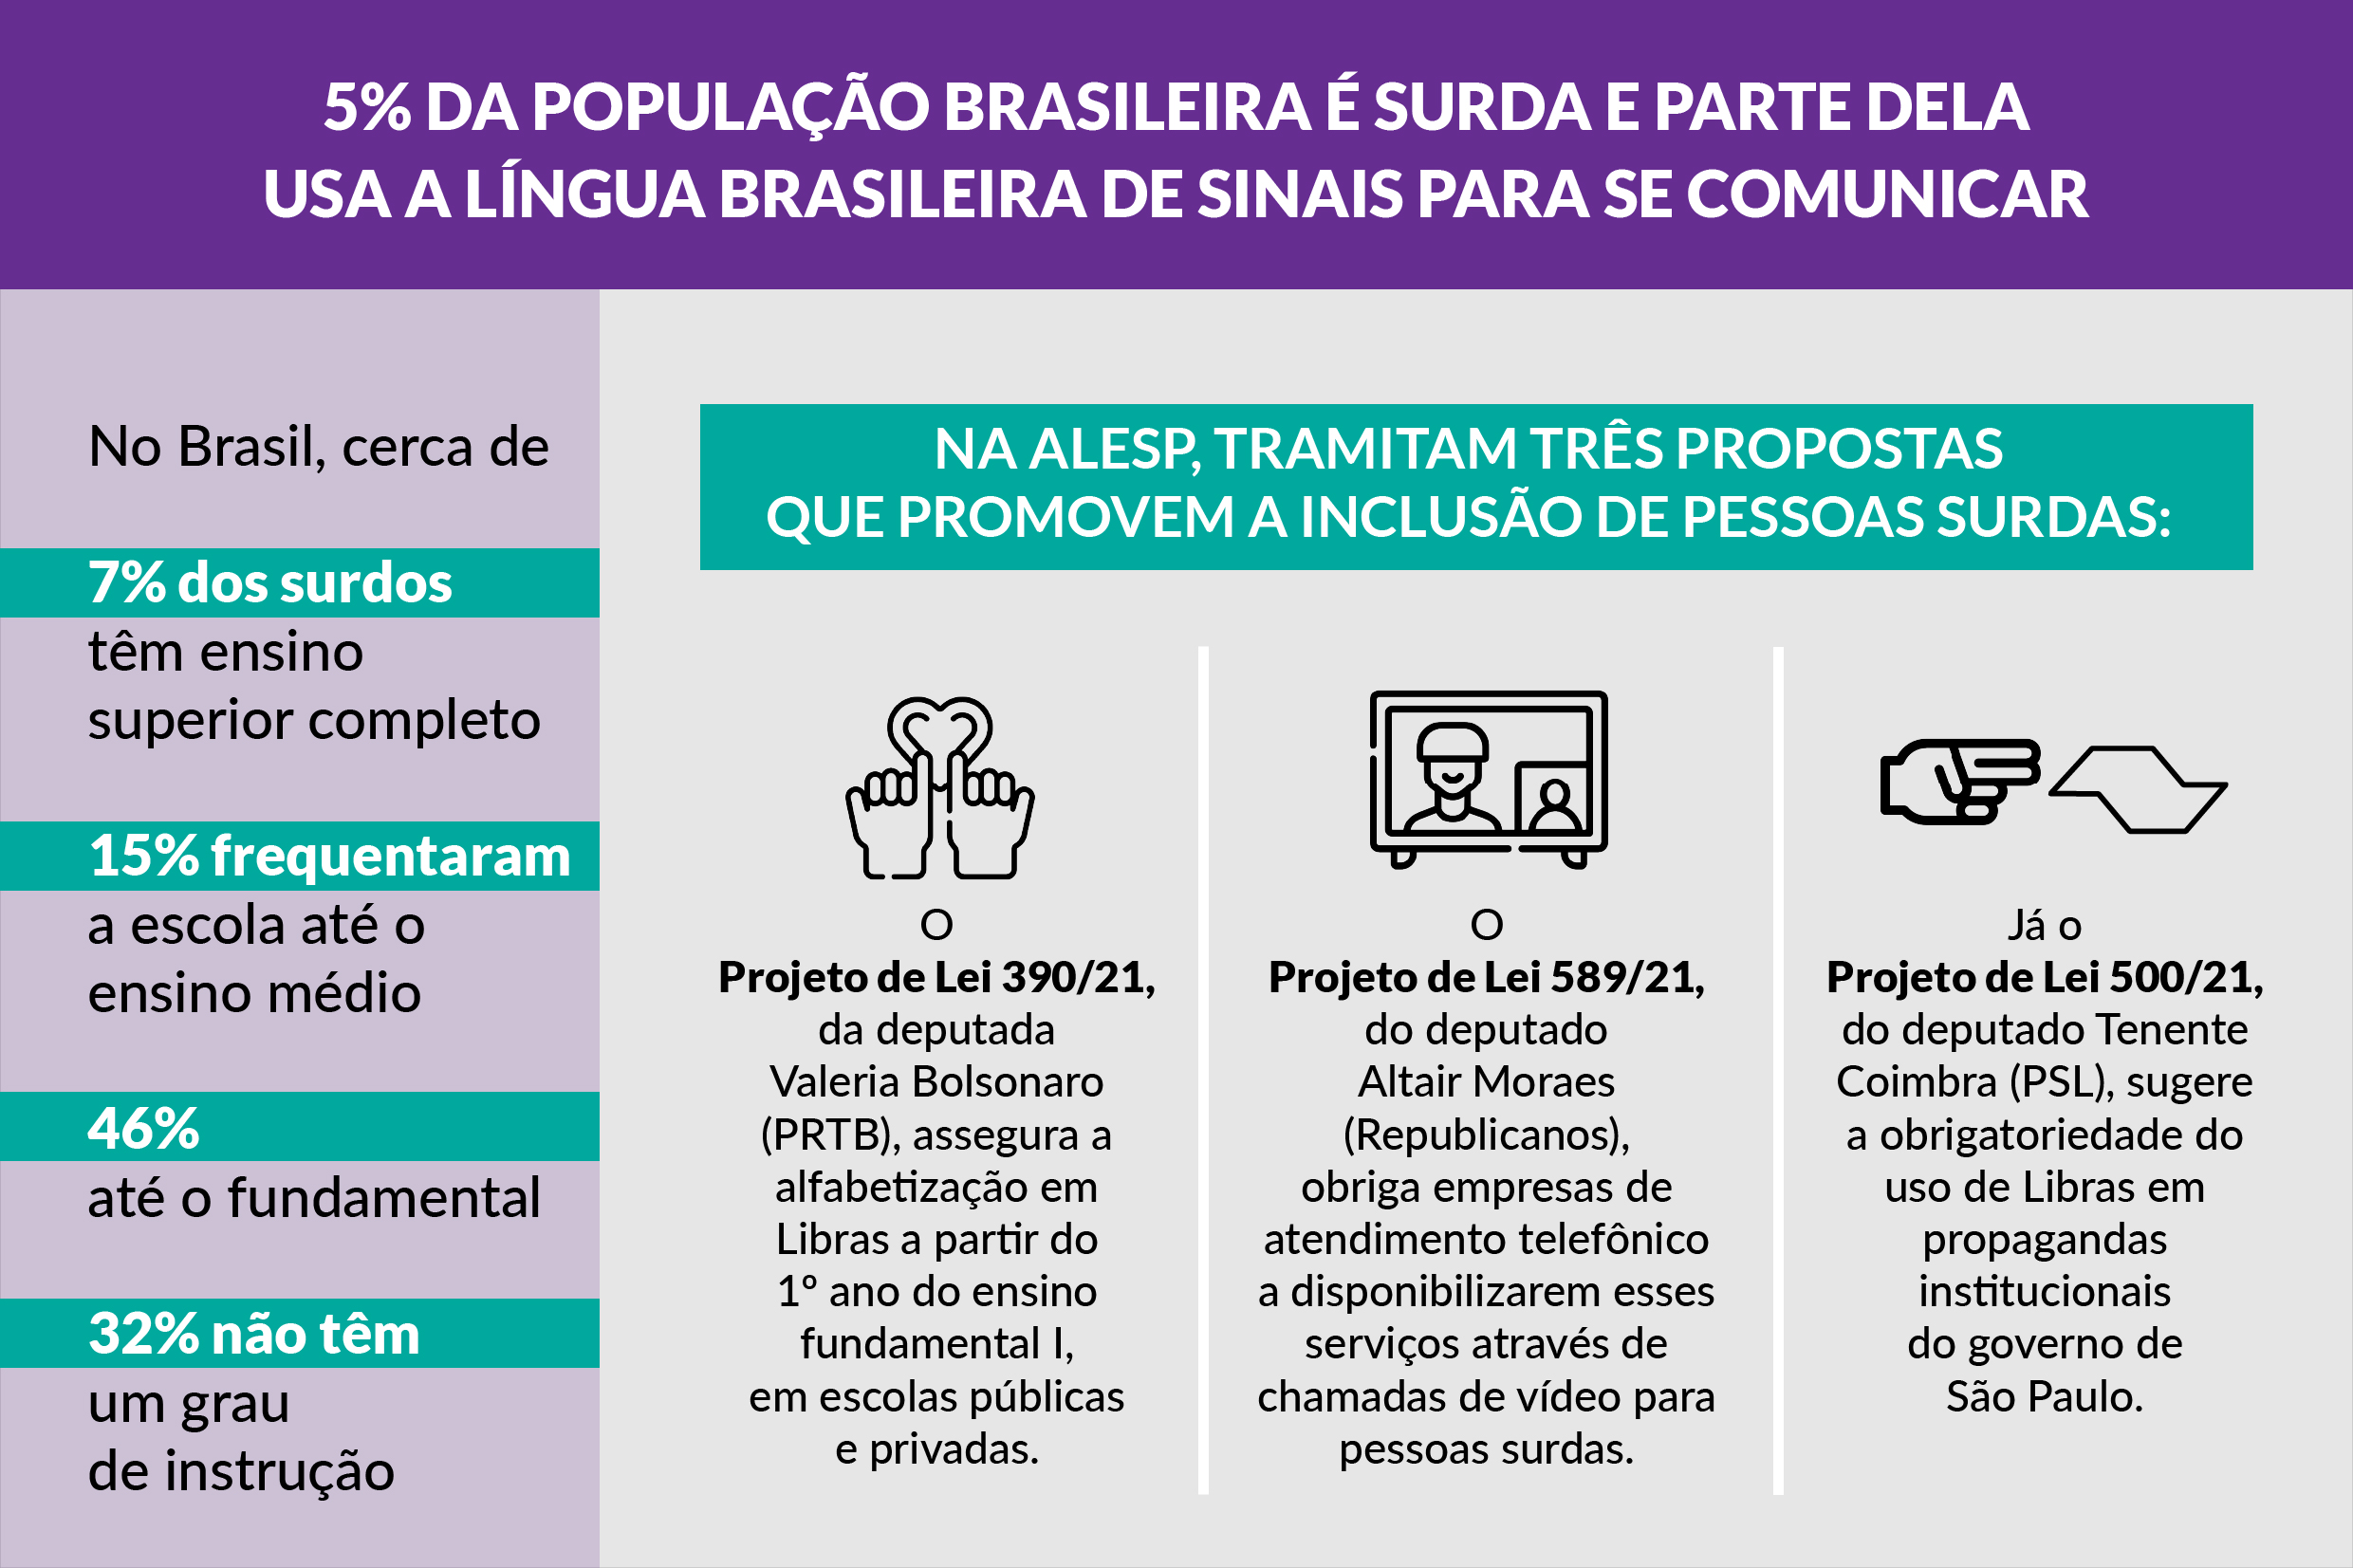 Infográfico<a style='float:right' href='https://www3.al.sp.gov.br/repositorio/noticia/N-09-2021/fg274680.jpg' target=_blank><img src='/_img/material-file-download-white.png' width='14px' alt='Clique para baixar a imagem'></a>